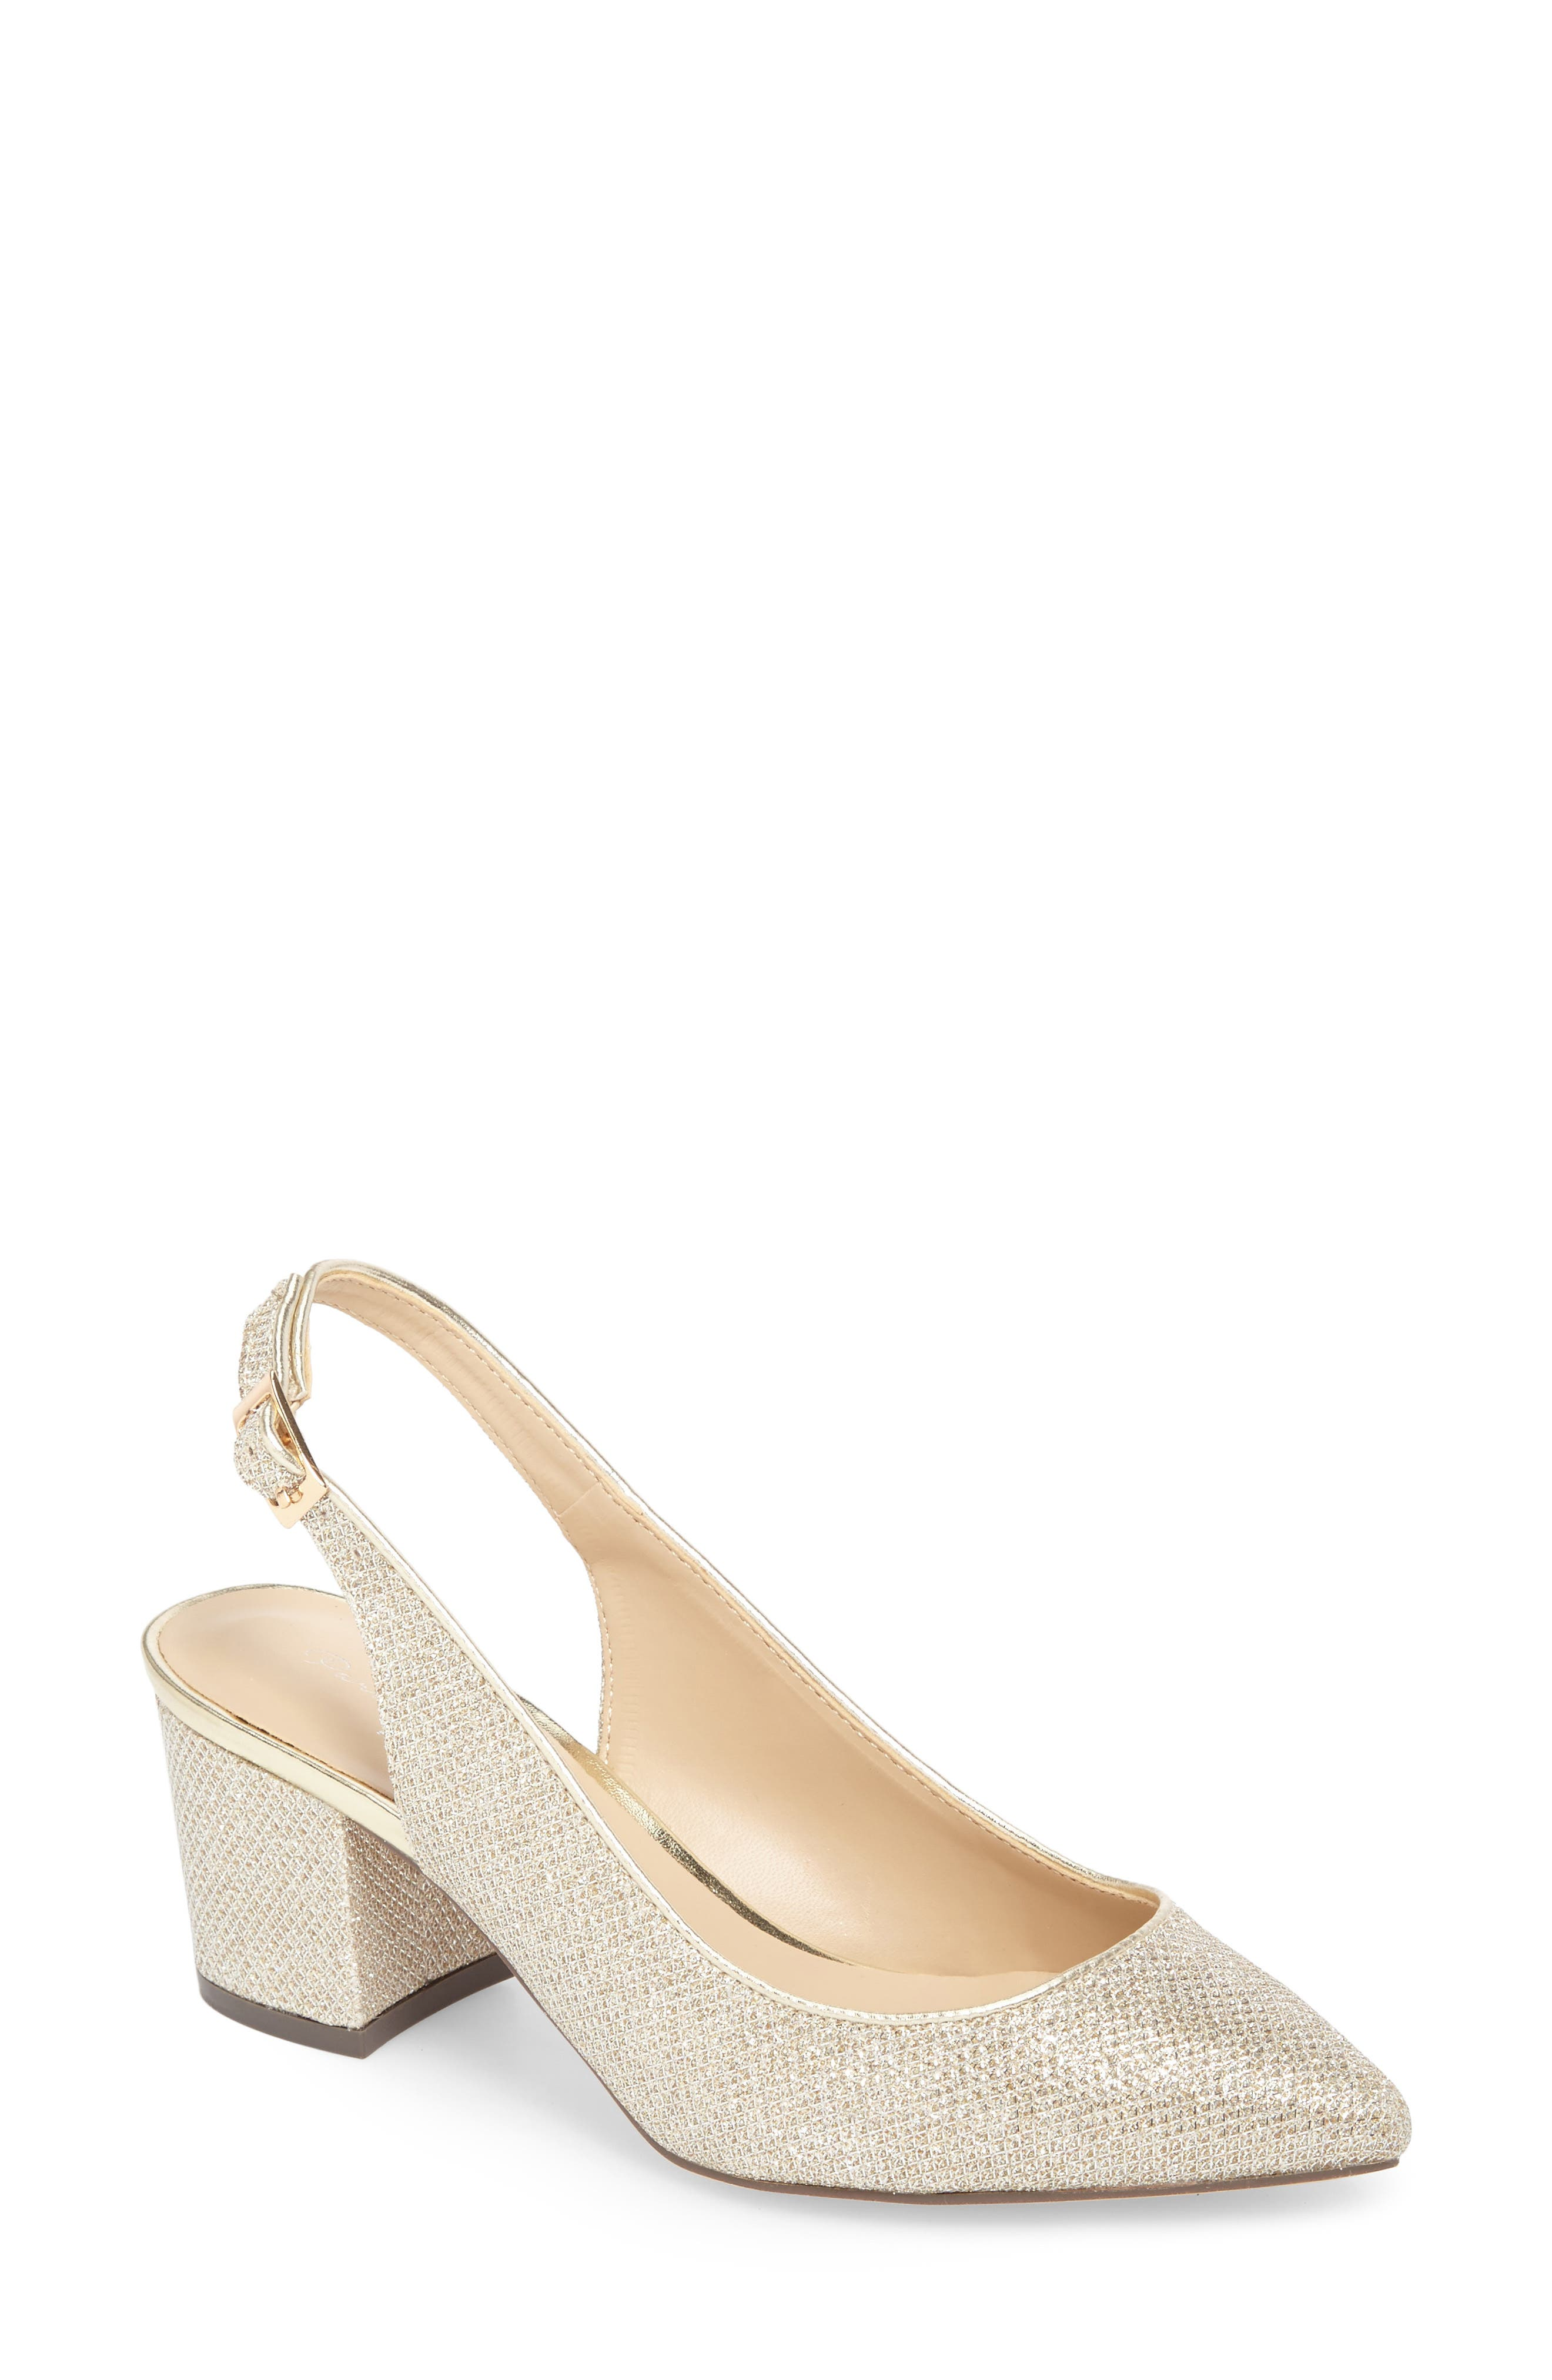 Aubree Slingback Pump,                             Main thumbnail 1, color,                             Champagne Glitter